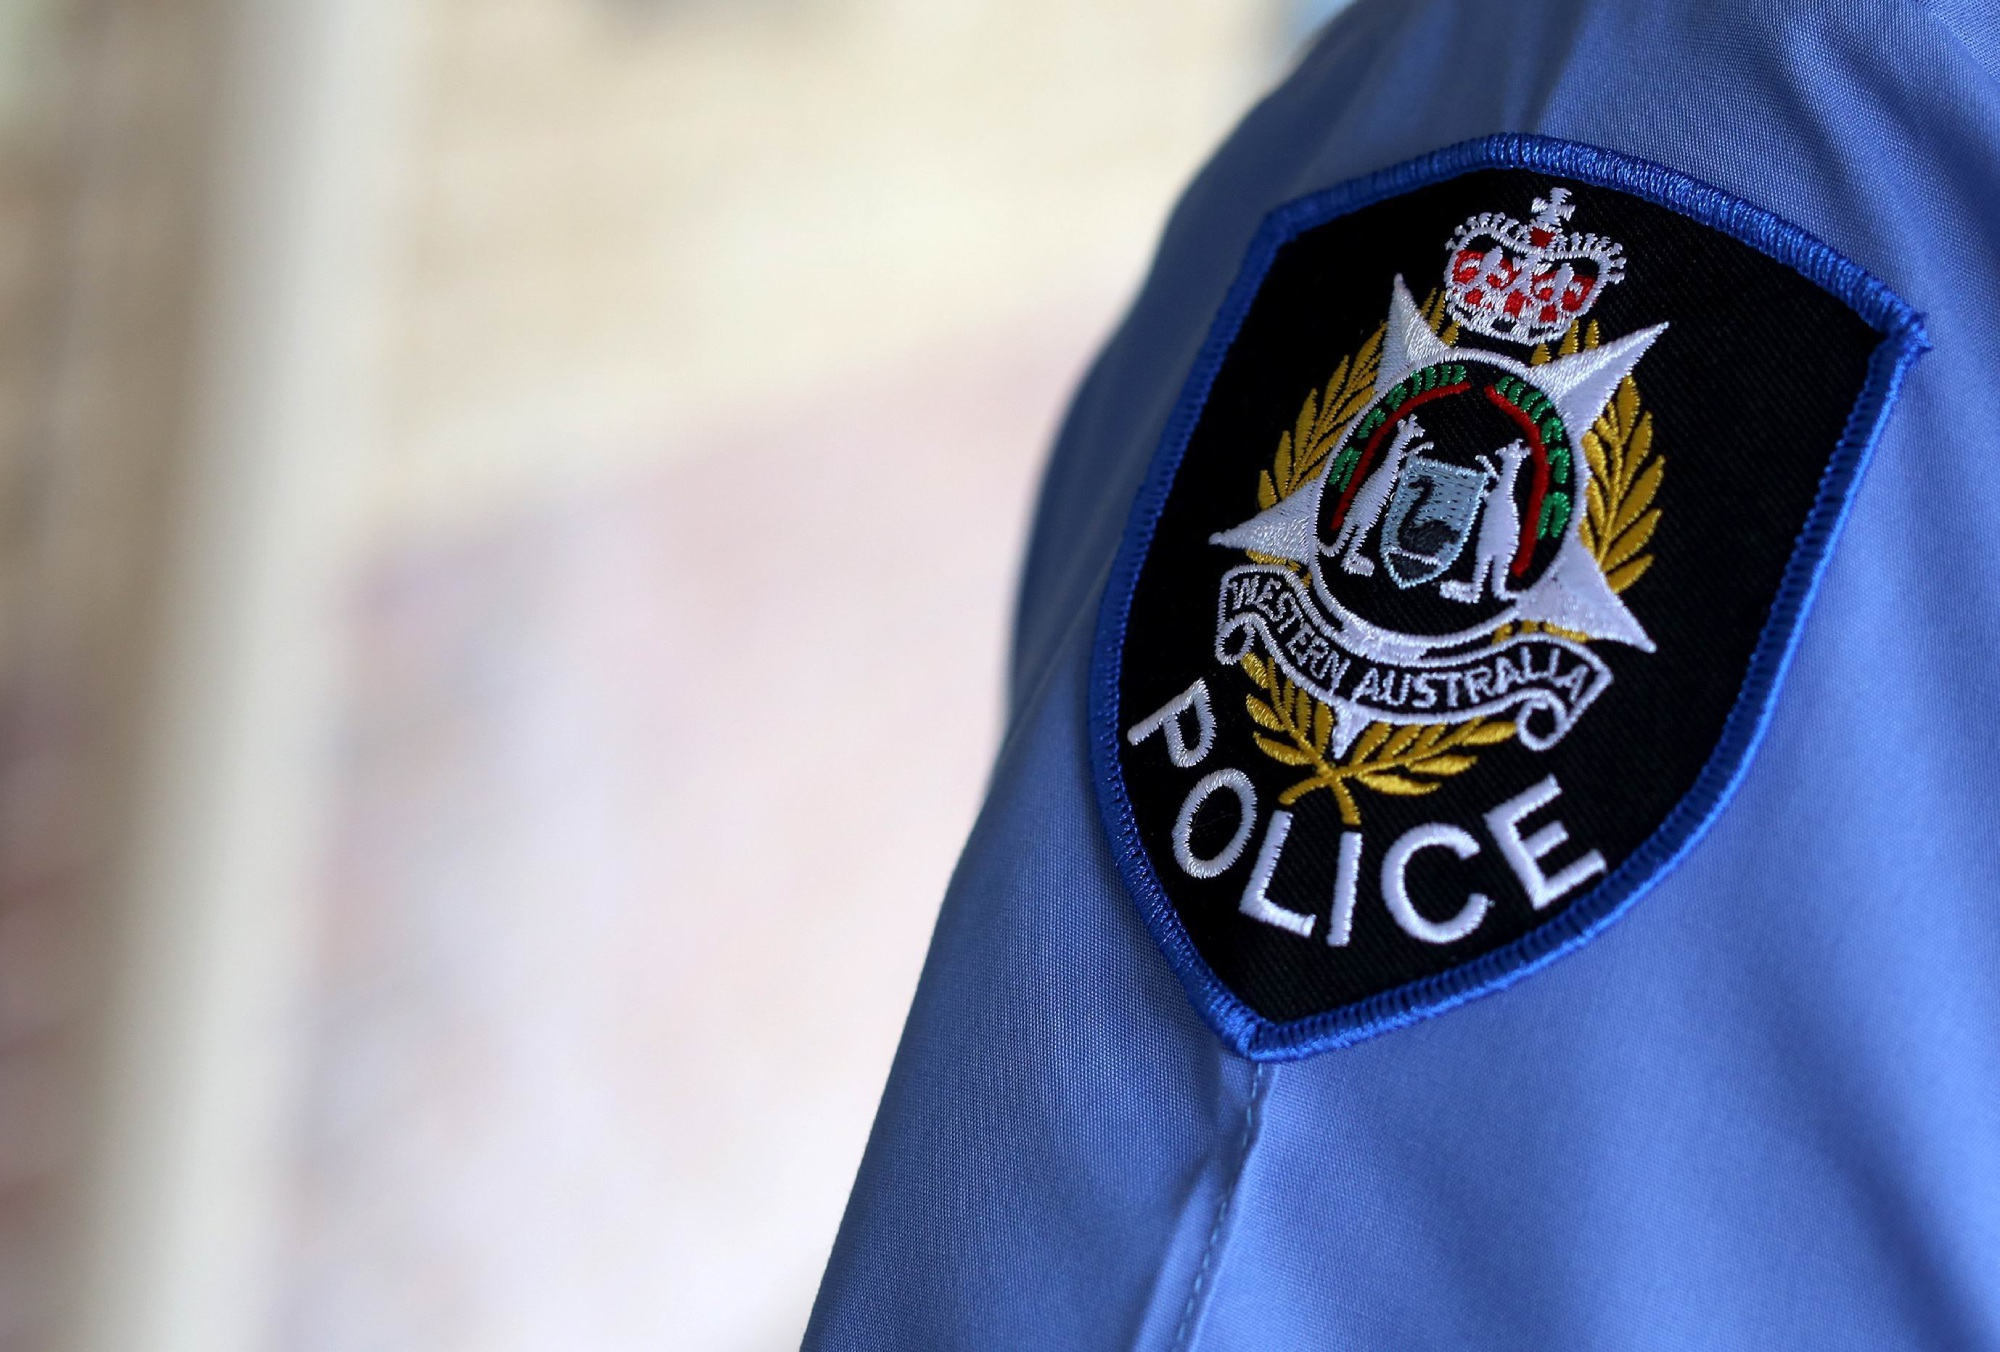 Pinjarra man charged after vehicle stop allegedly uncovers gun, drugs